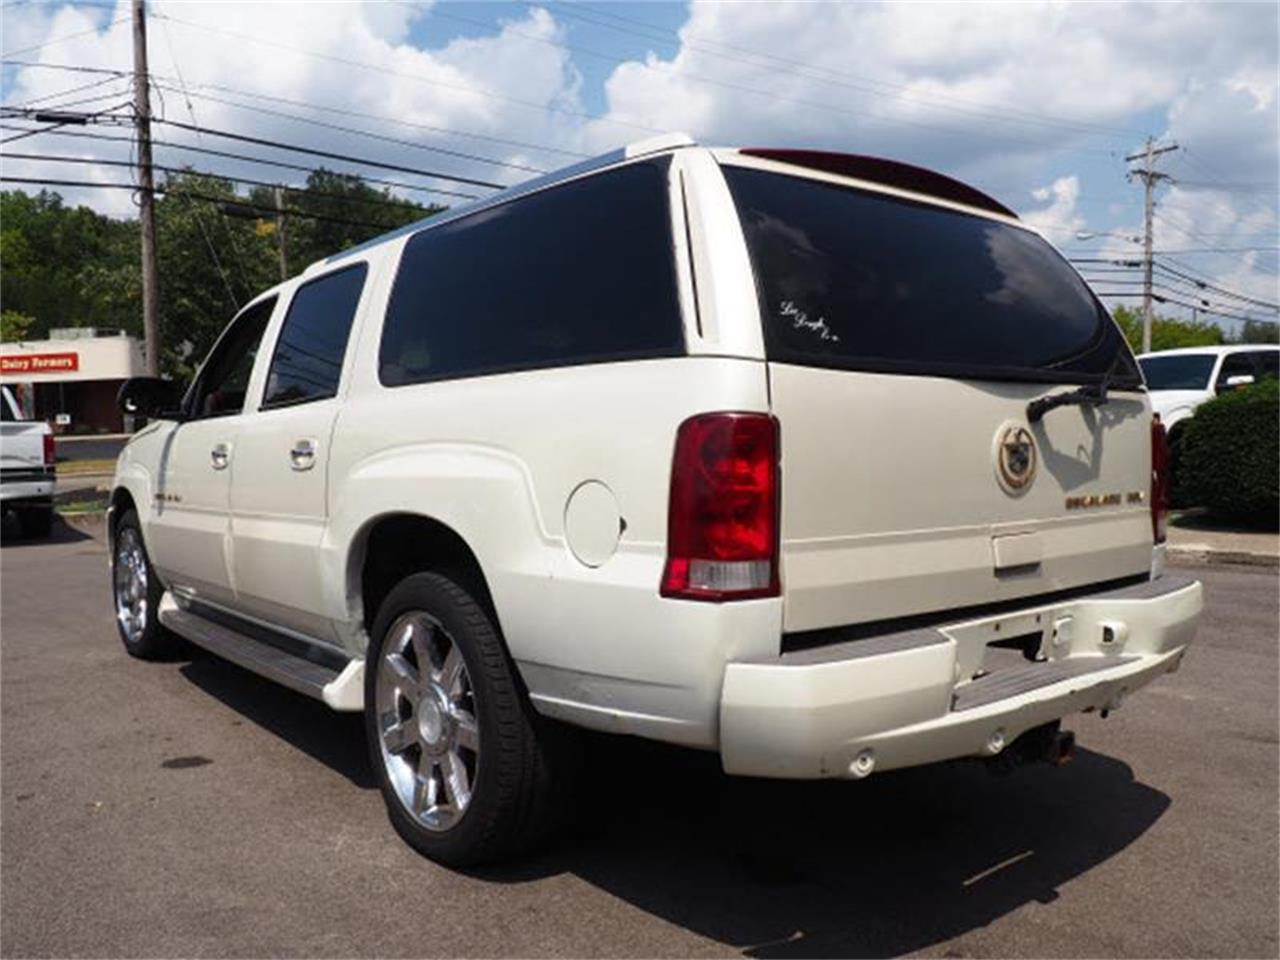 Large Picture of 2003 Escalade located in Ohio - $3,000.00 Offered by Cincinnati Auto Wholesale - MBL6